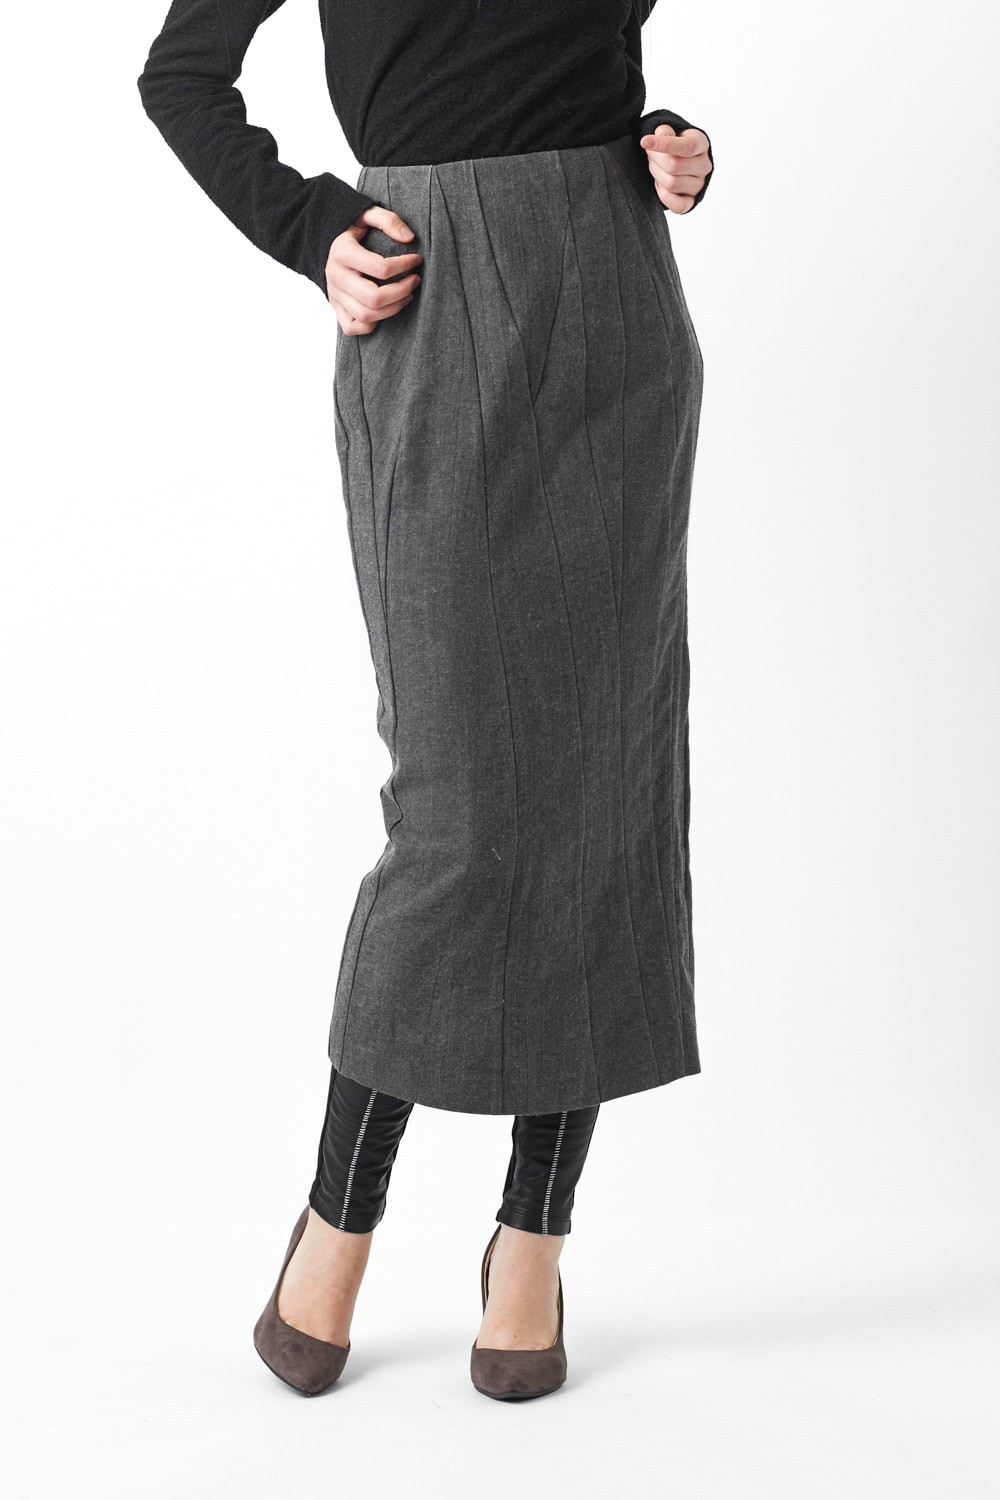 Wool Linen Cotton Washed Cloth Skirt 06-S05